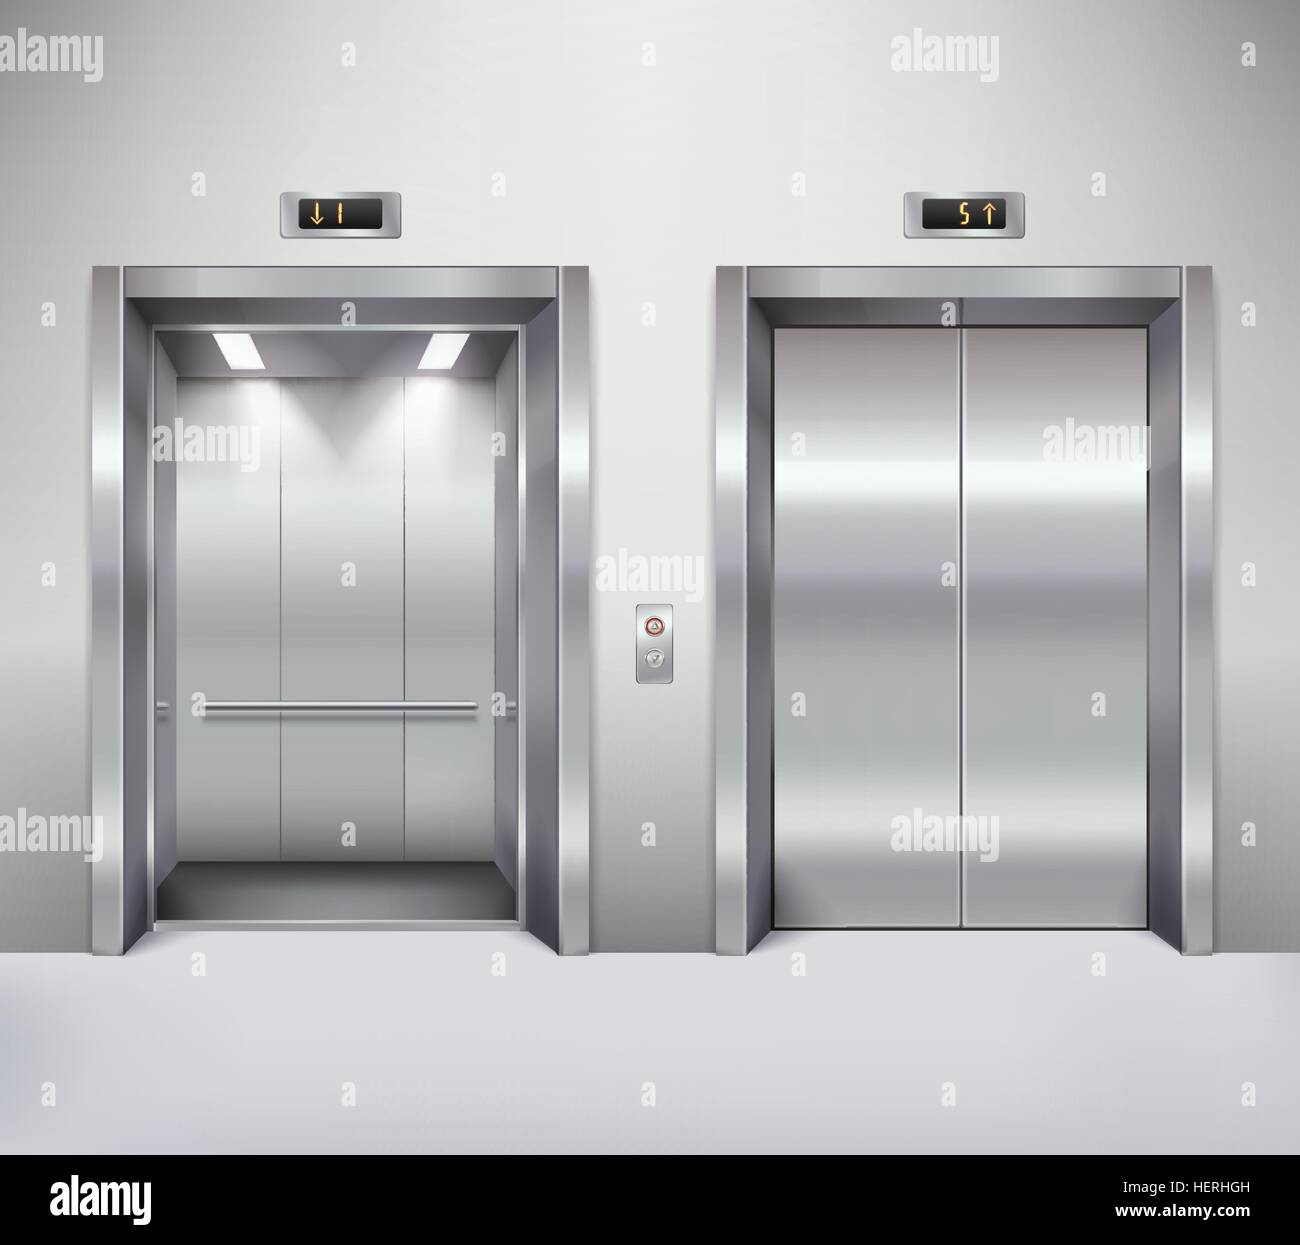 Elevator door illustration. Open and closed chrome metal office ...